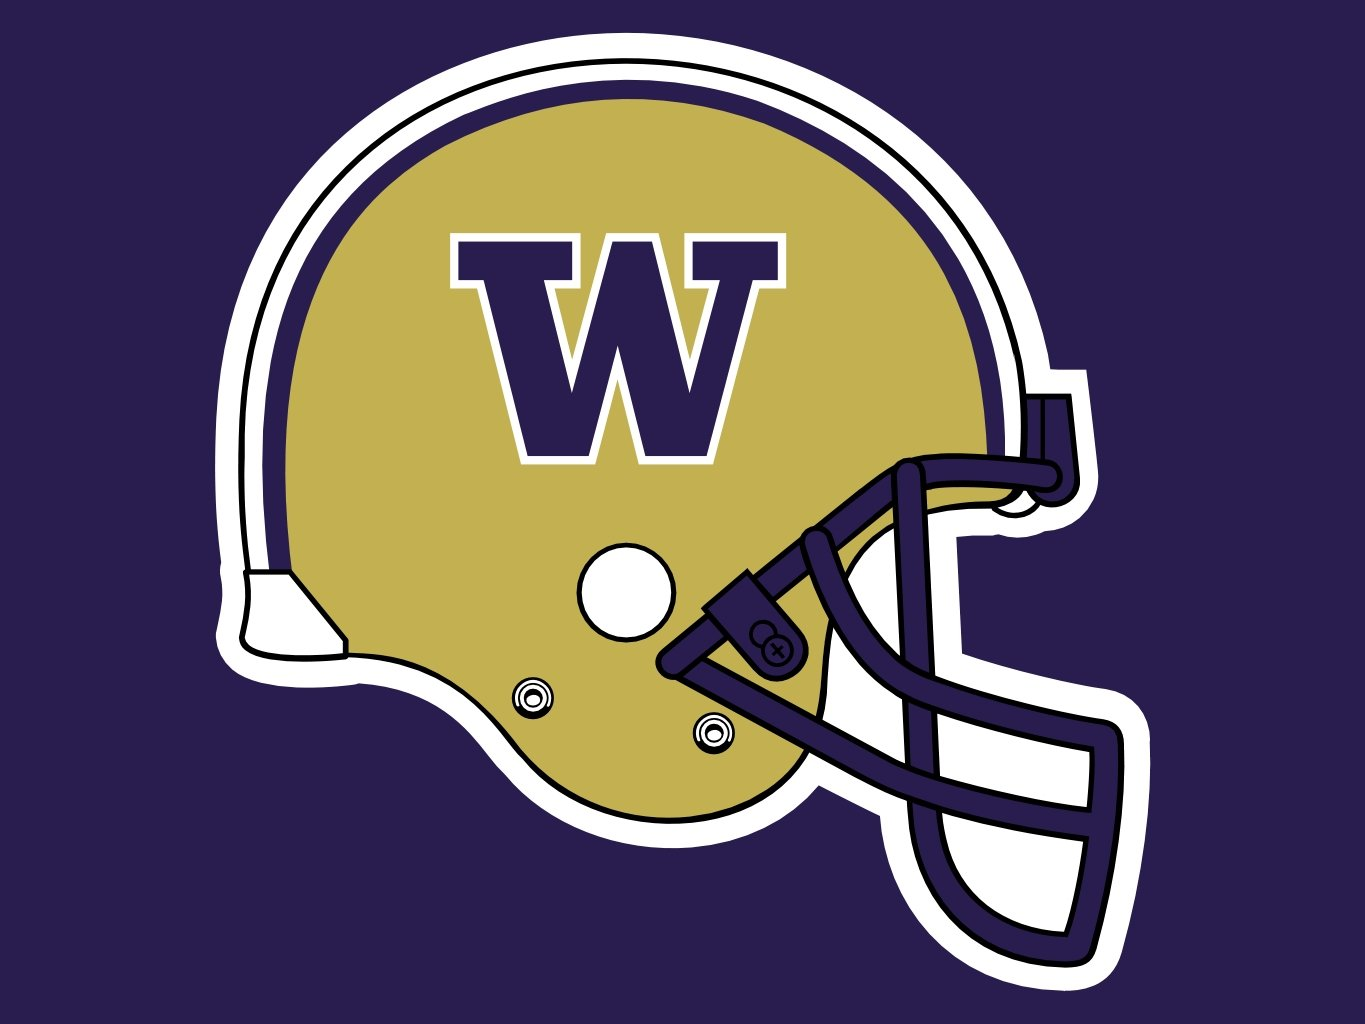 University Of Washington Huskies Wallpaper >> Washington Husky Wallpaper - WallpaperSafari